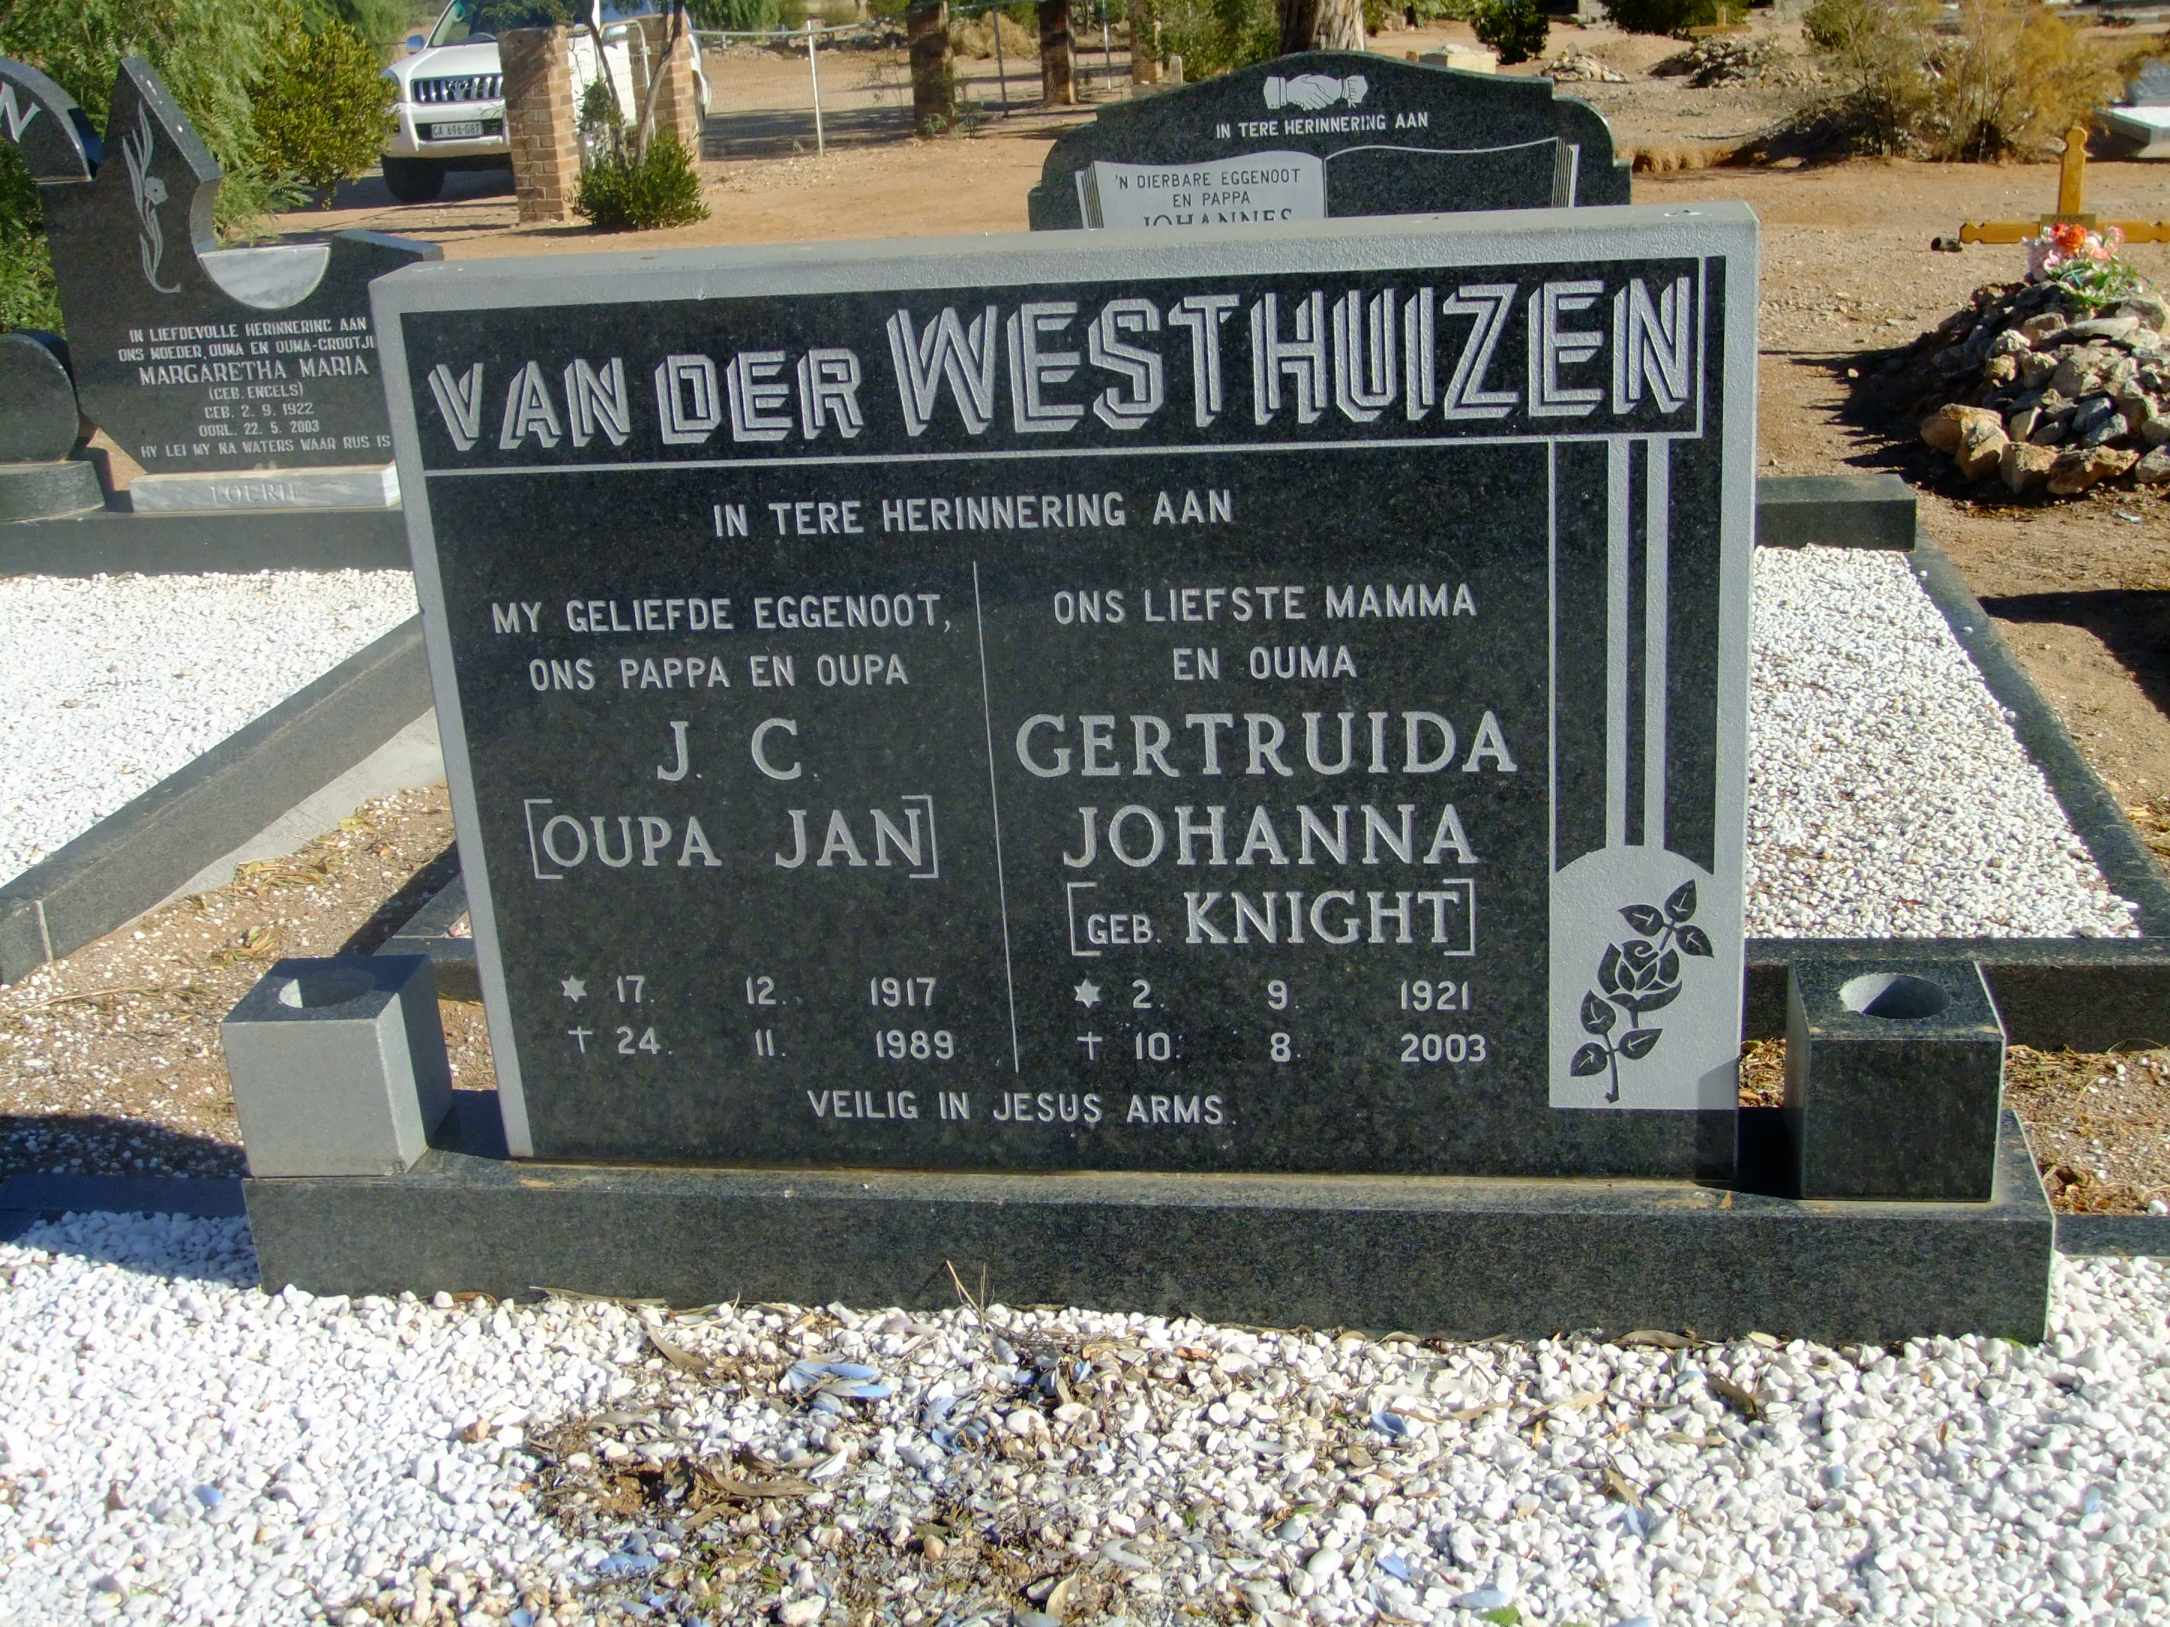 Van der Westhuizen, JC born 17 December 1917 died 24 November 1989 and Gertruida Johanna nee Knight born 02 September 1921 died 10 August 2003